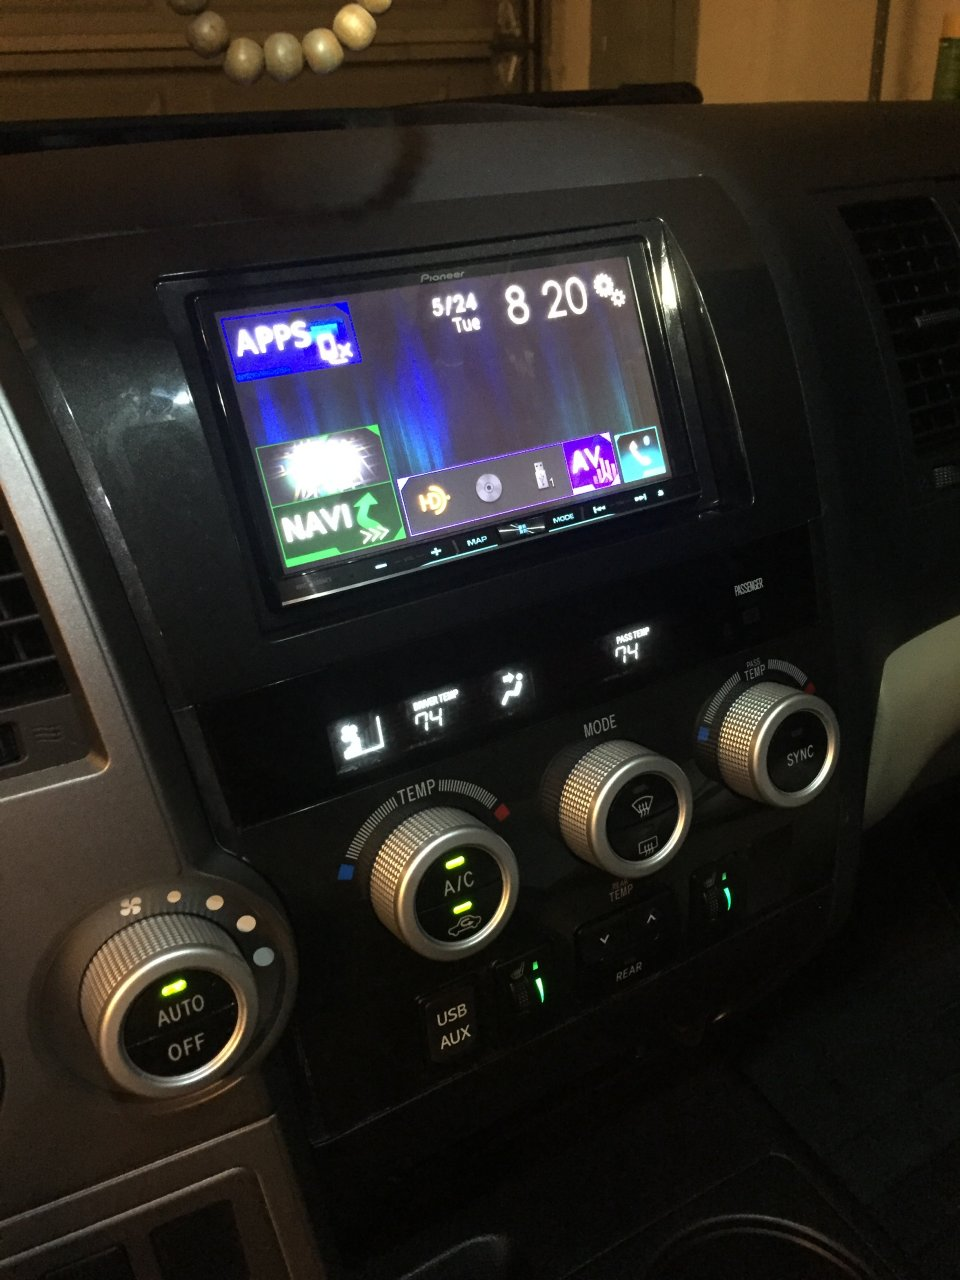 hight resolution of i have a sequoia that has the same radio setup as a tundra i installed a pioneer avic 8100 nex head unit with a crux swrty 61 wiring harness to retain